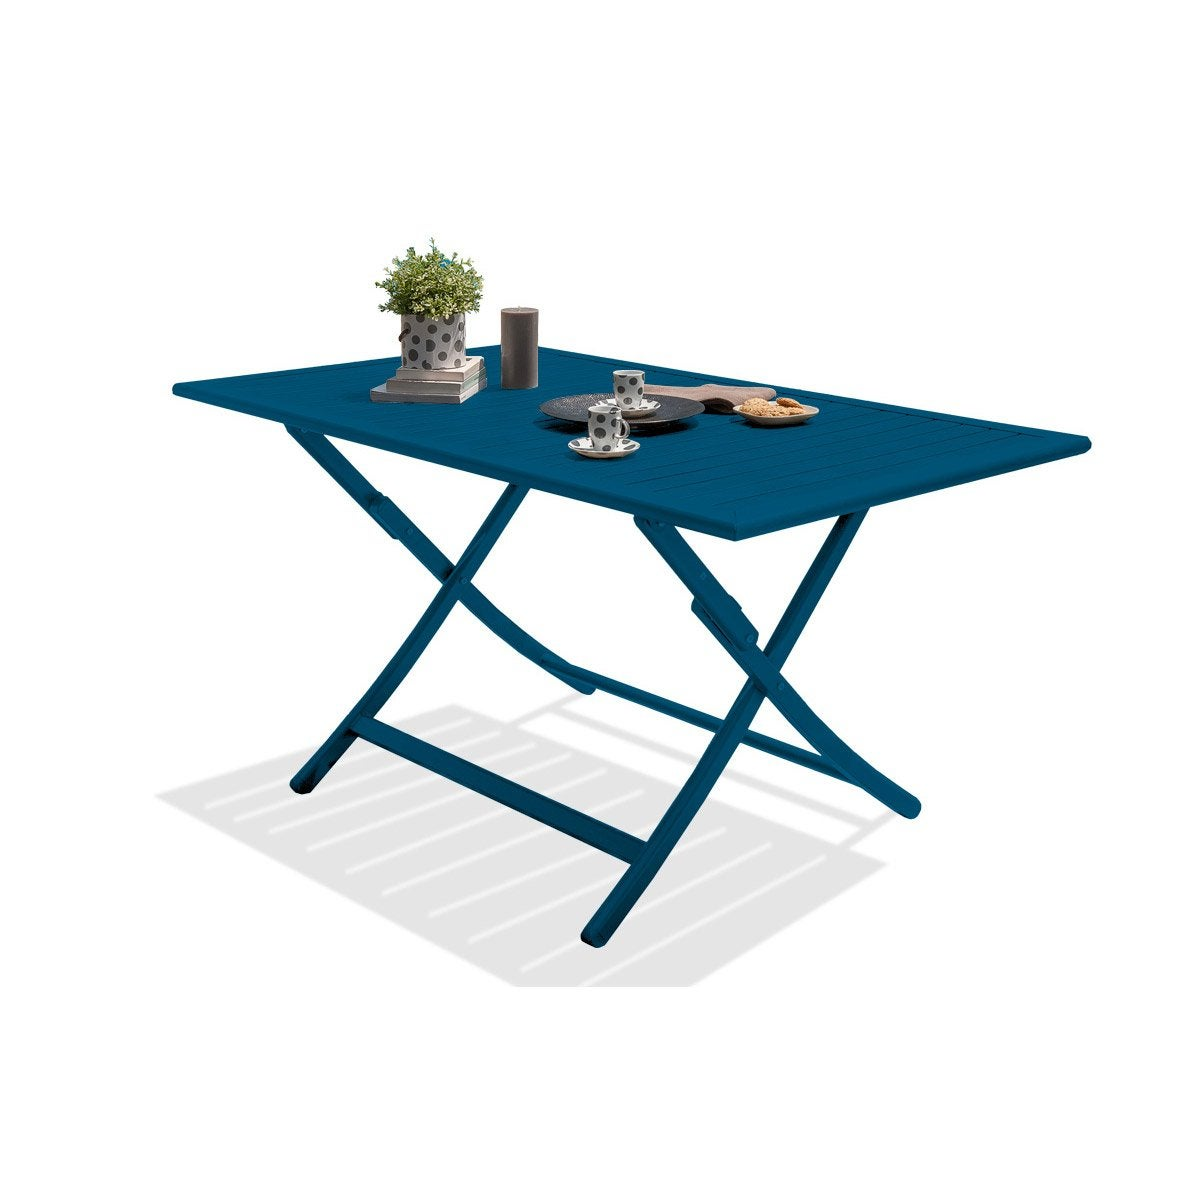 Table de jardin marius rectangulaire bleu riviera 4 6 for Table jardin bleu